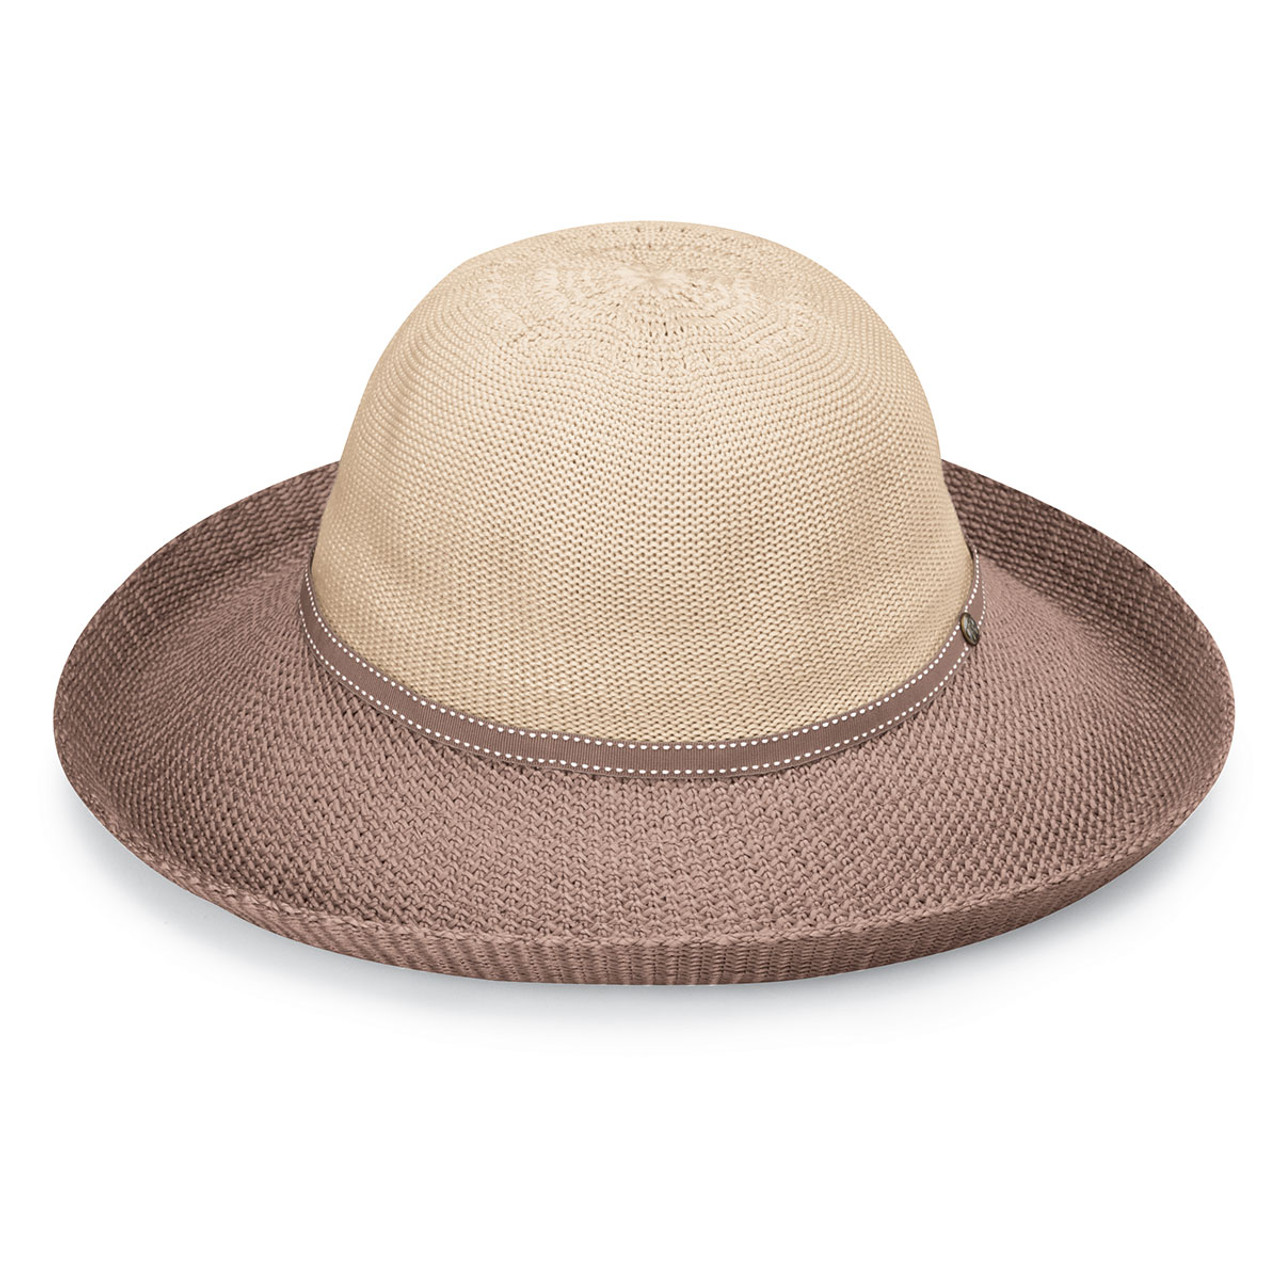 158a727af5be Wallaroo Womens Victoria Two-tone sun hat beige-mocha